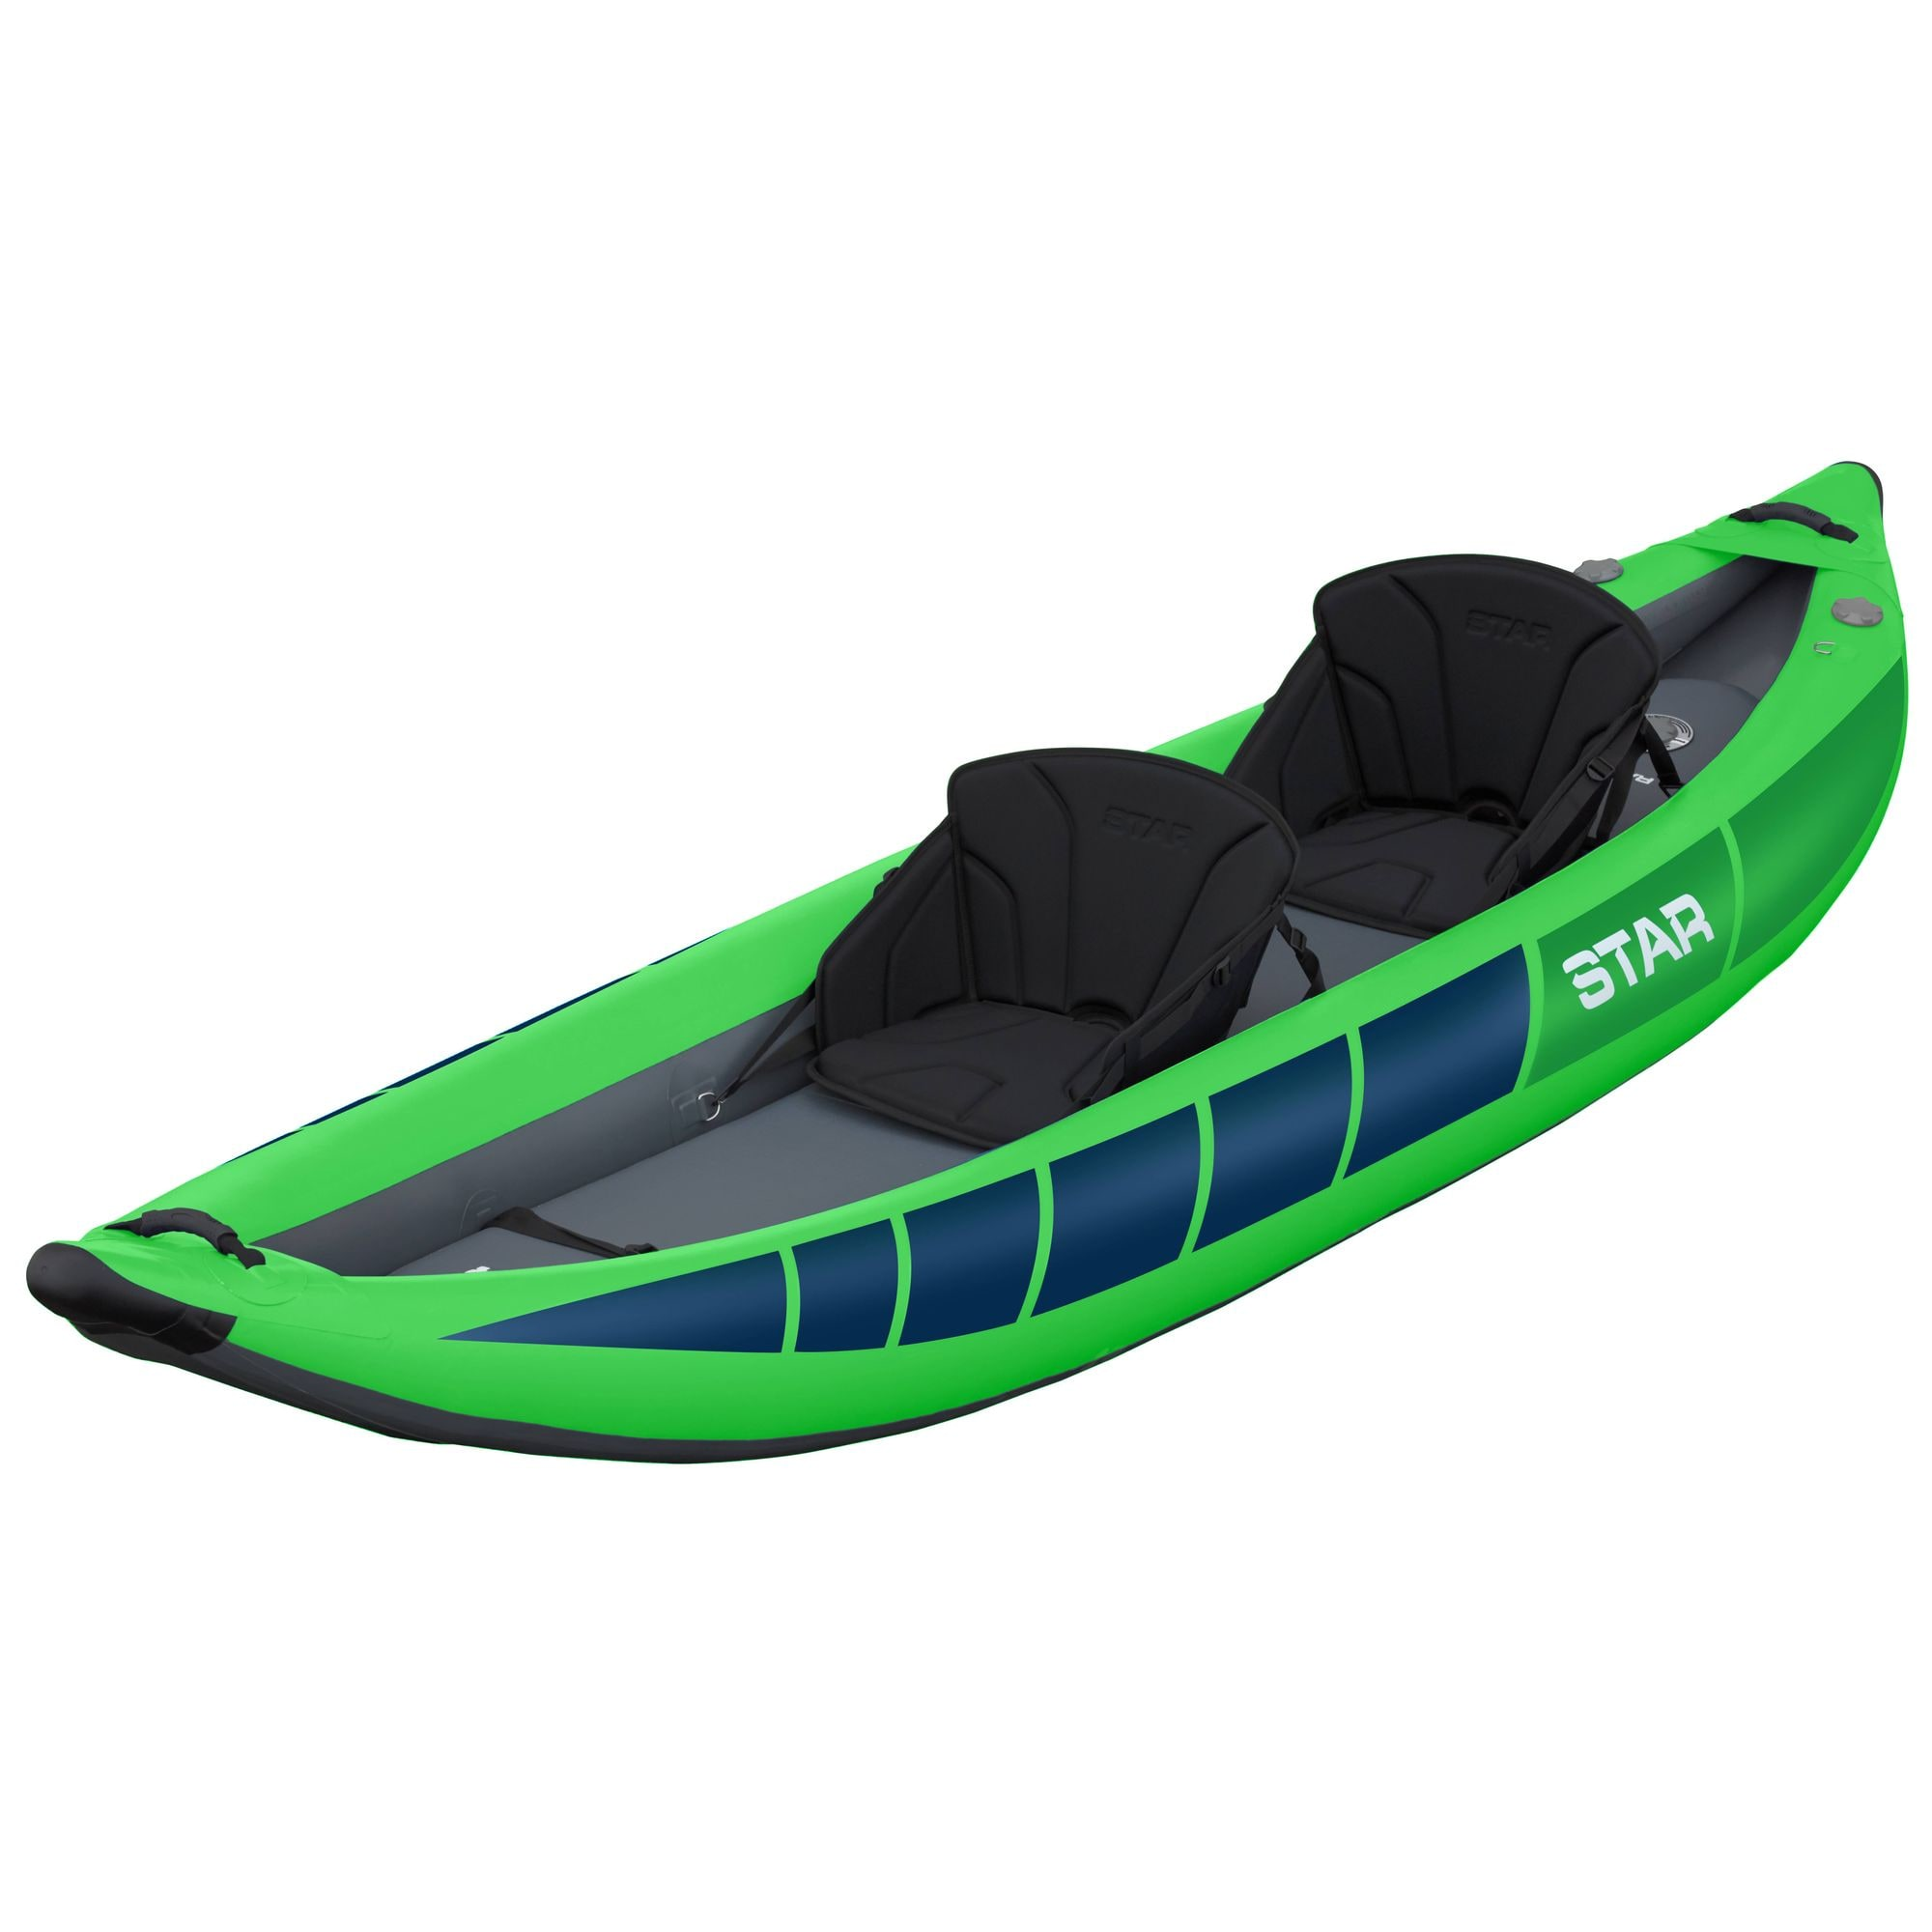 NRS Star Raven II inflatable kayak